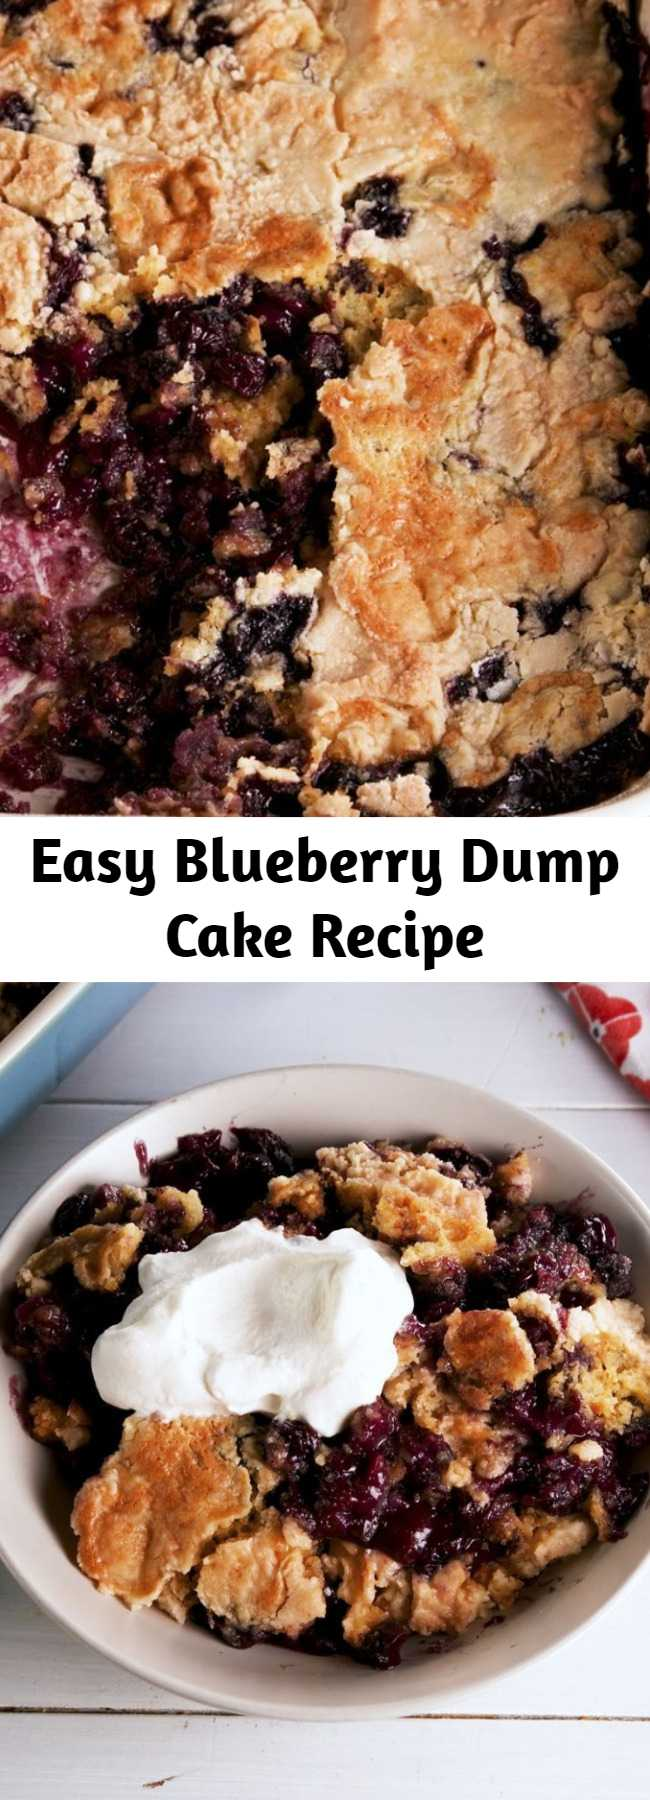 Easy Blueberry Dump Cake Recipe - This Blueberry Dump Cake is as easy as dumping a bunch of stuff into a bowl—but your guests will never know!